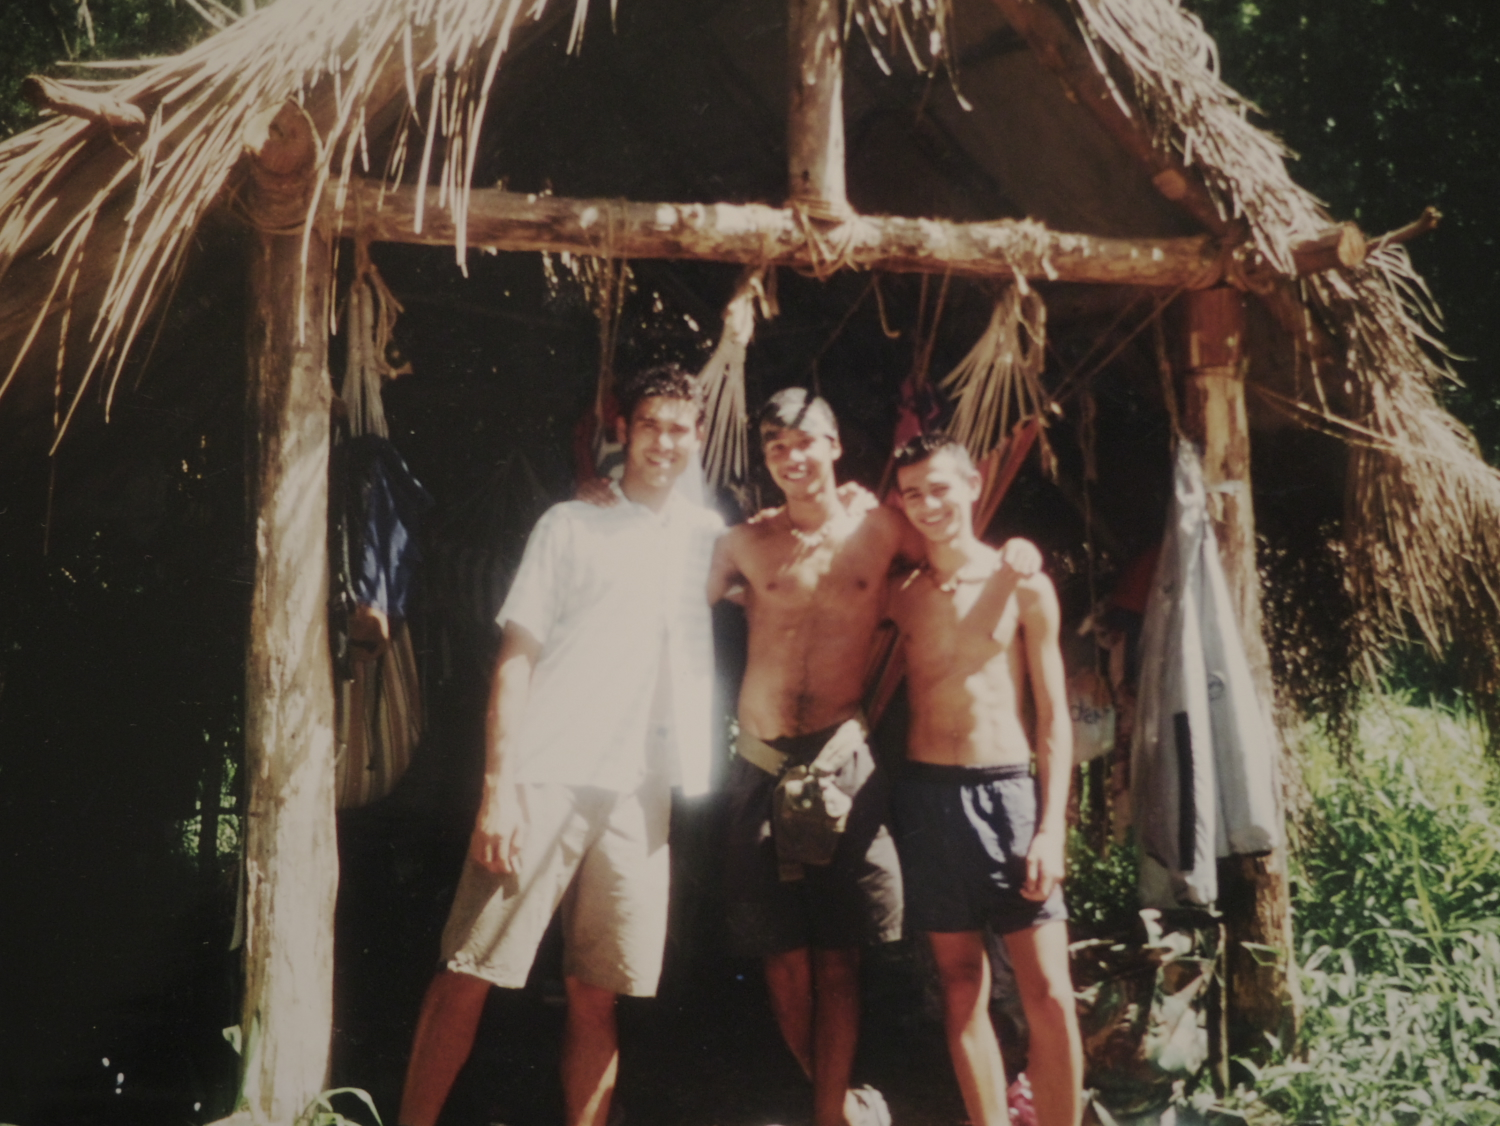 The three original male Edenites, Rav, me and Westley outside our sleeping quarters